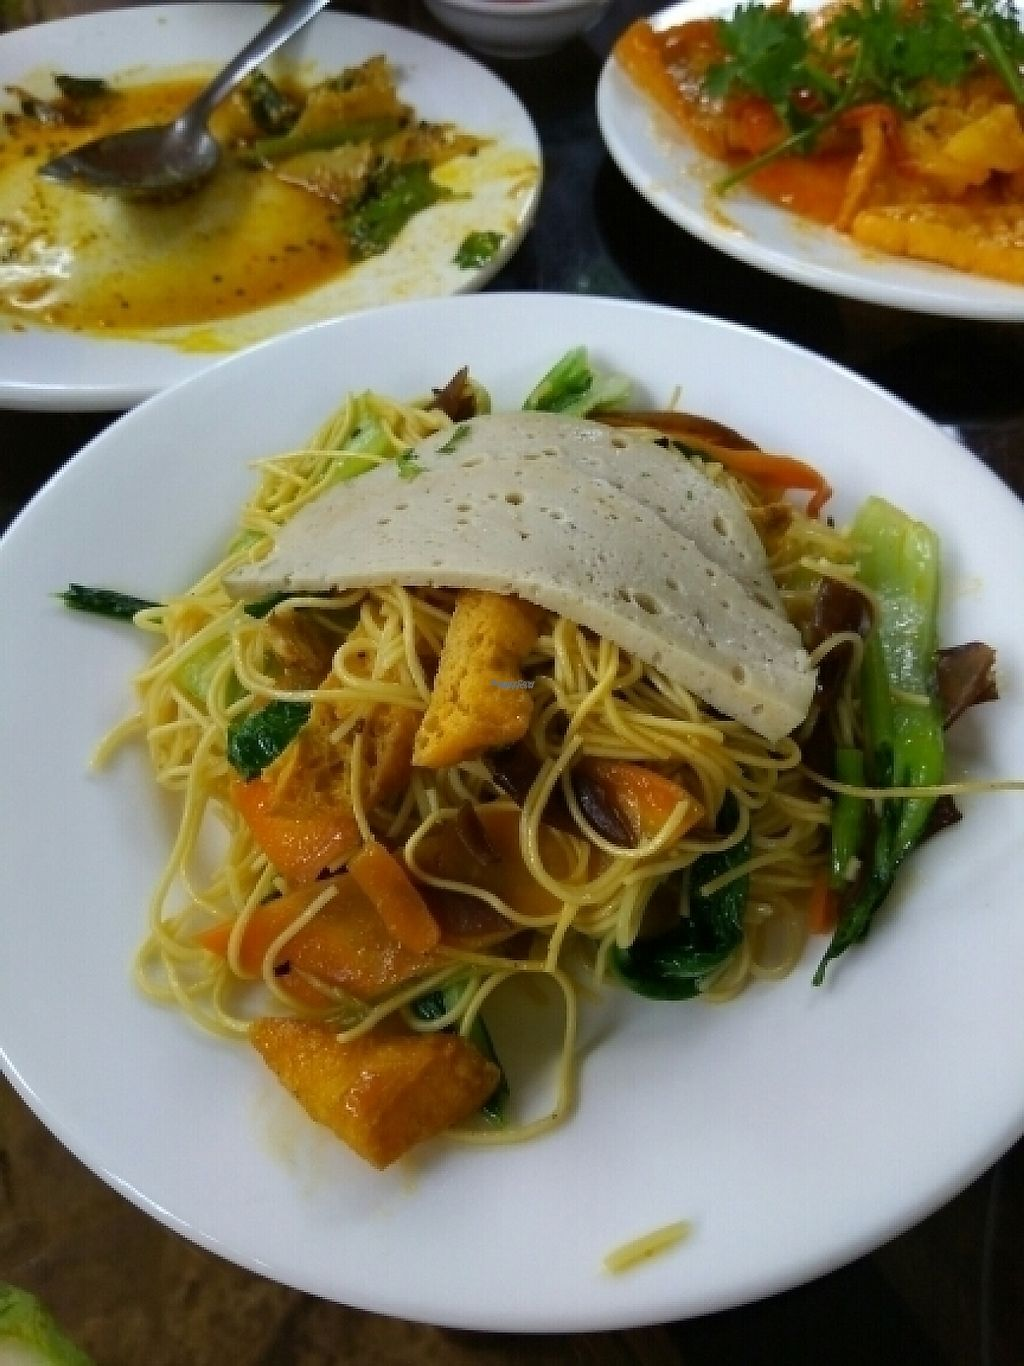 """Photo of Ngu Ha Garden Vegetarian Restaurant  by <a href=""""/members/profile/Miggi"""">Miggi</a> <br/>noodles with vegetables <br/> January 9, 2017  - <a href='/contact/abuse/image/82947/209820'>Report</a>"""